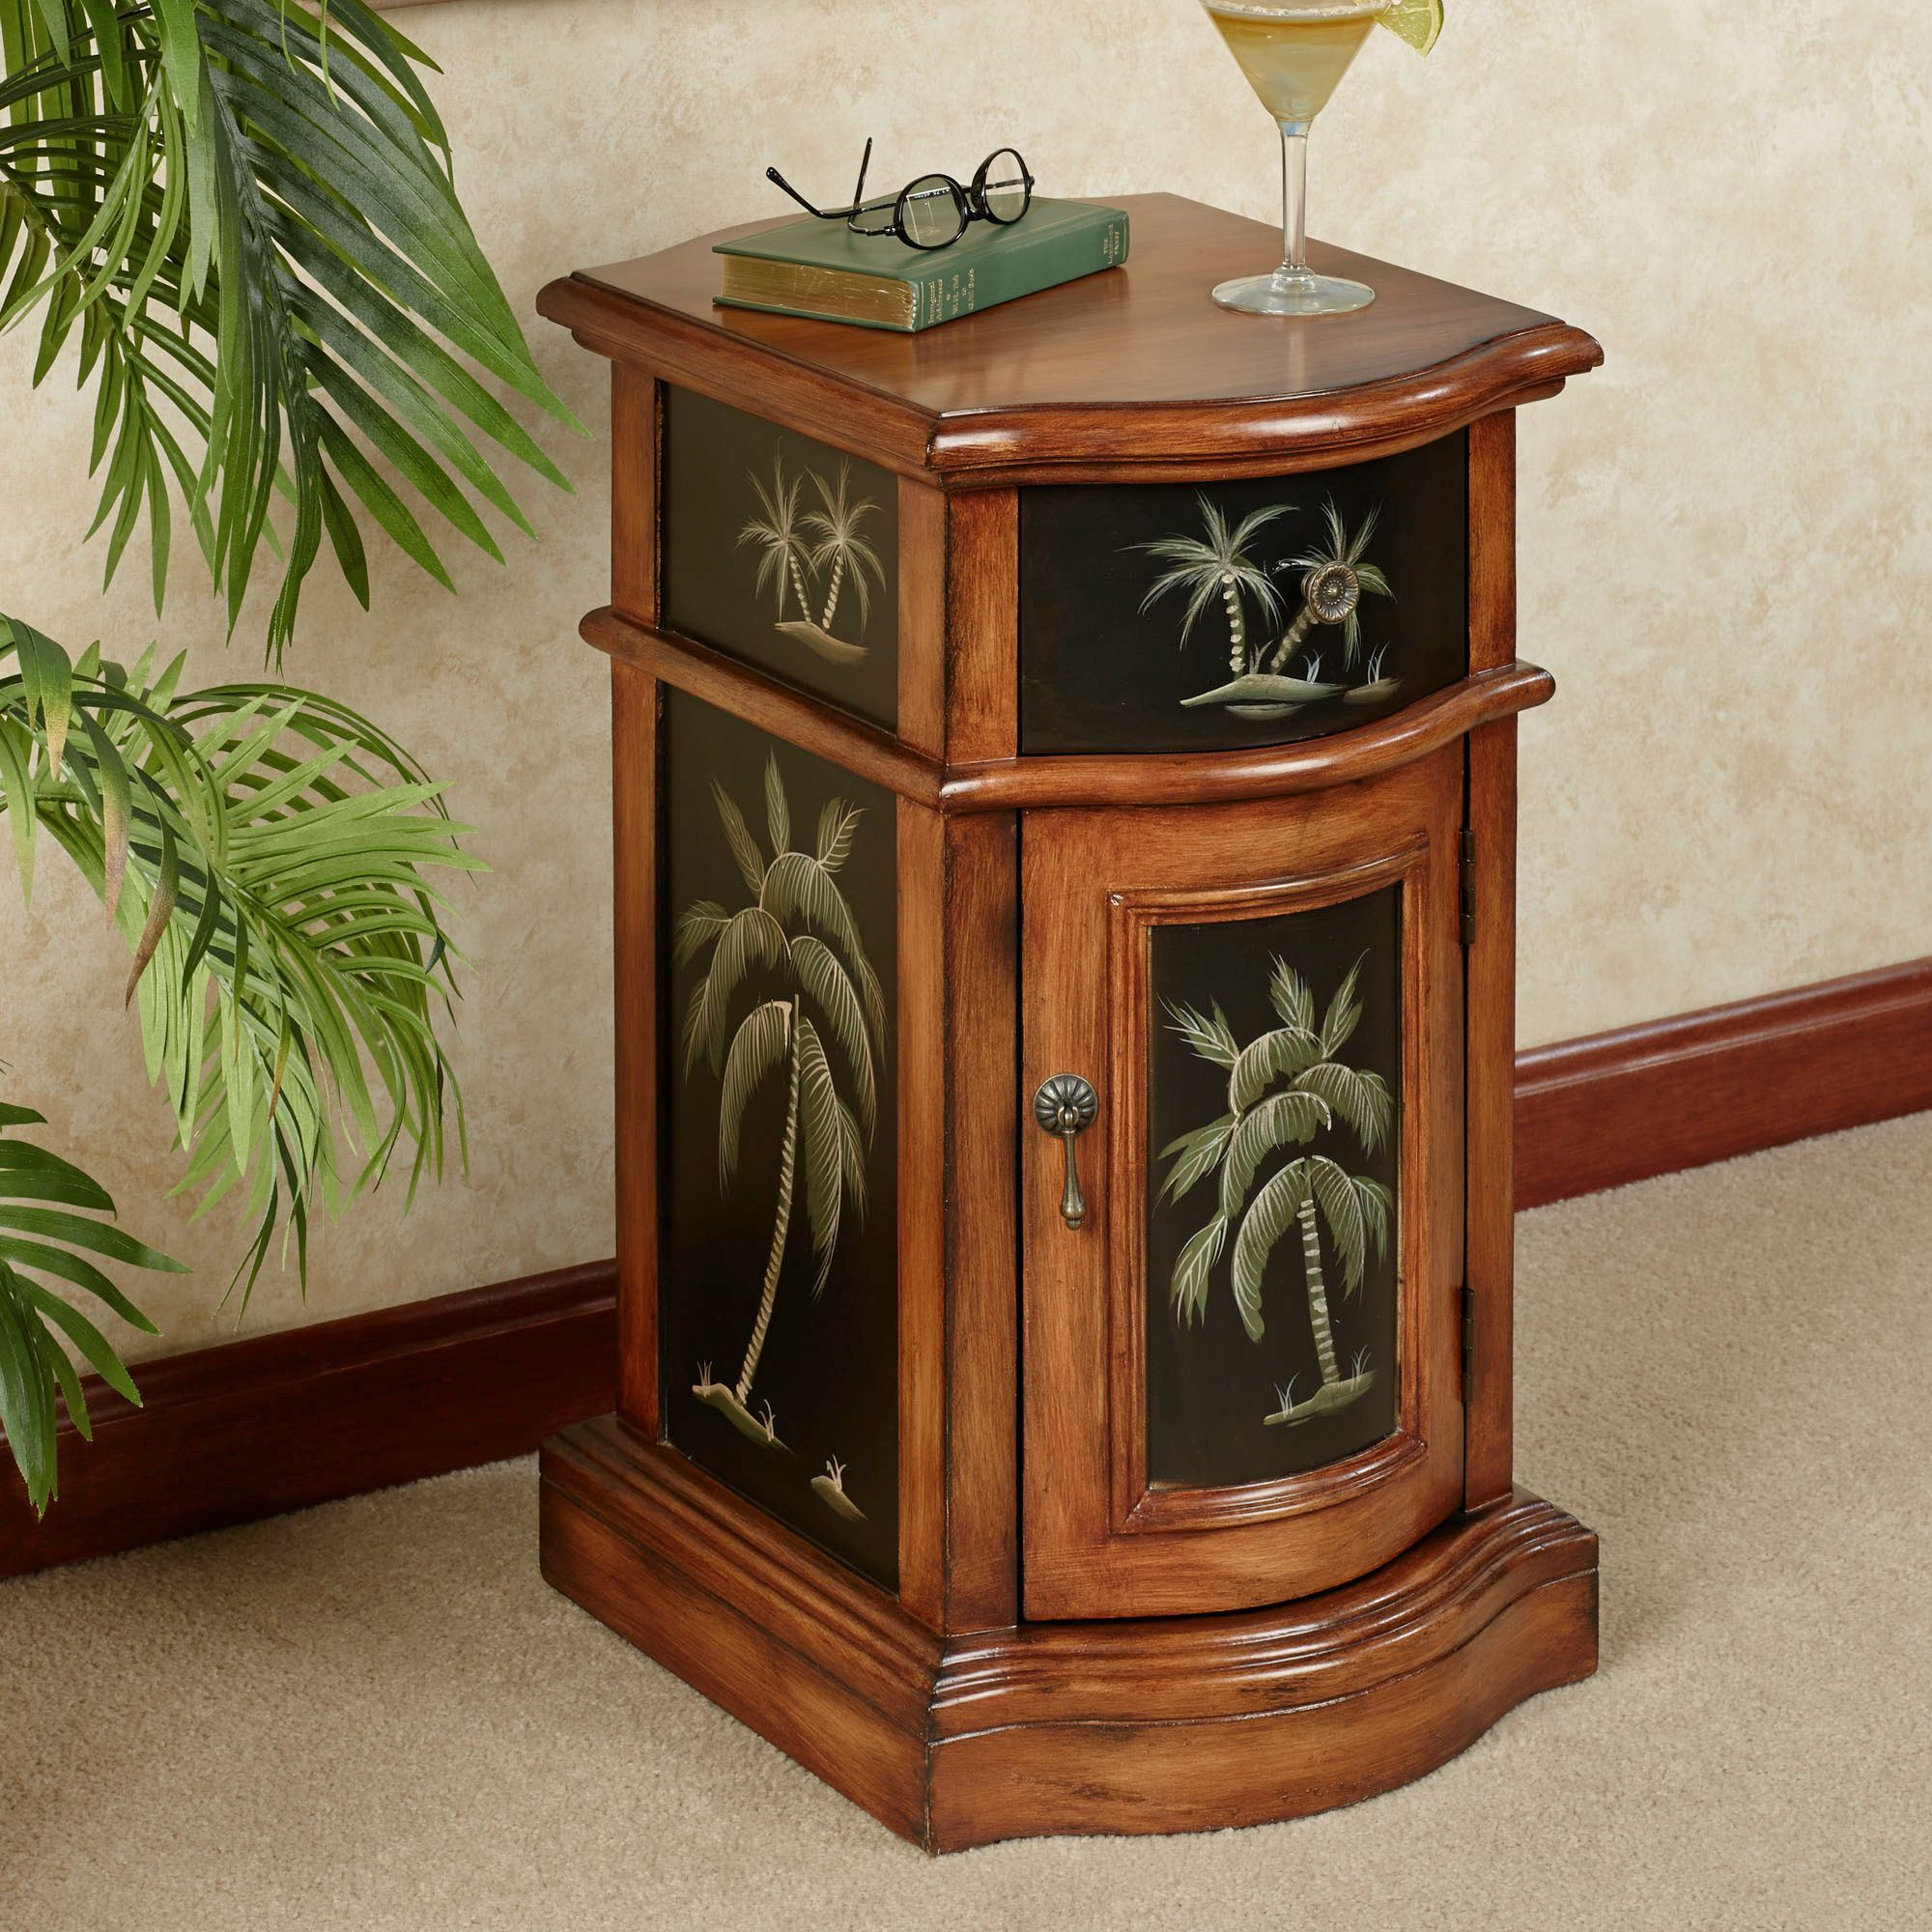 kellsie palm tree storage accent cabinet cherry corner table touch zoom simple side plans small round bar rustic pedestal aluminum outdoor end tables modern furniture miami dark